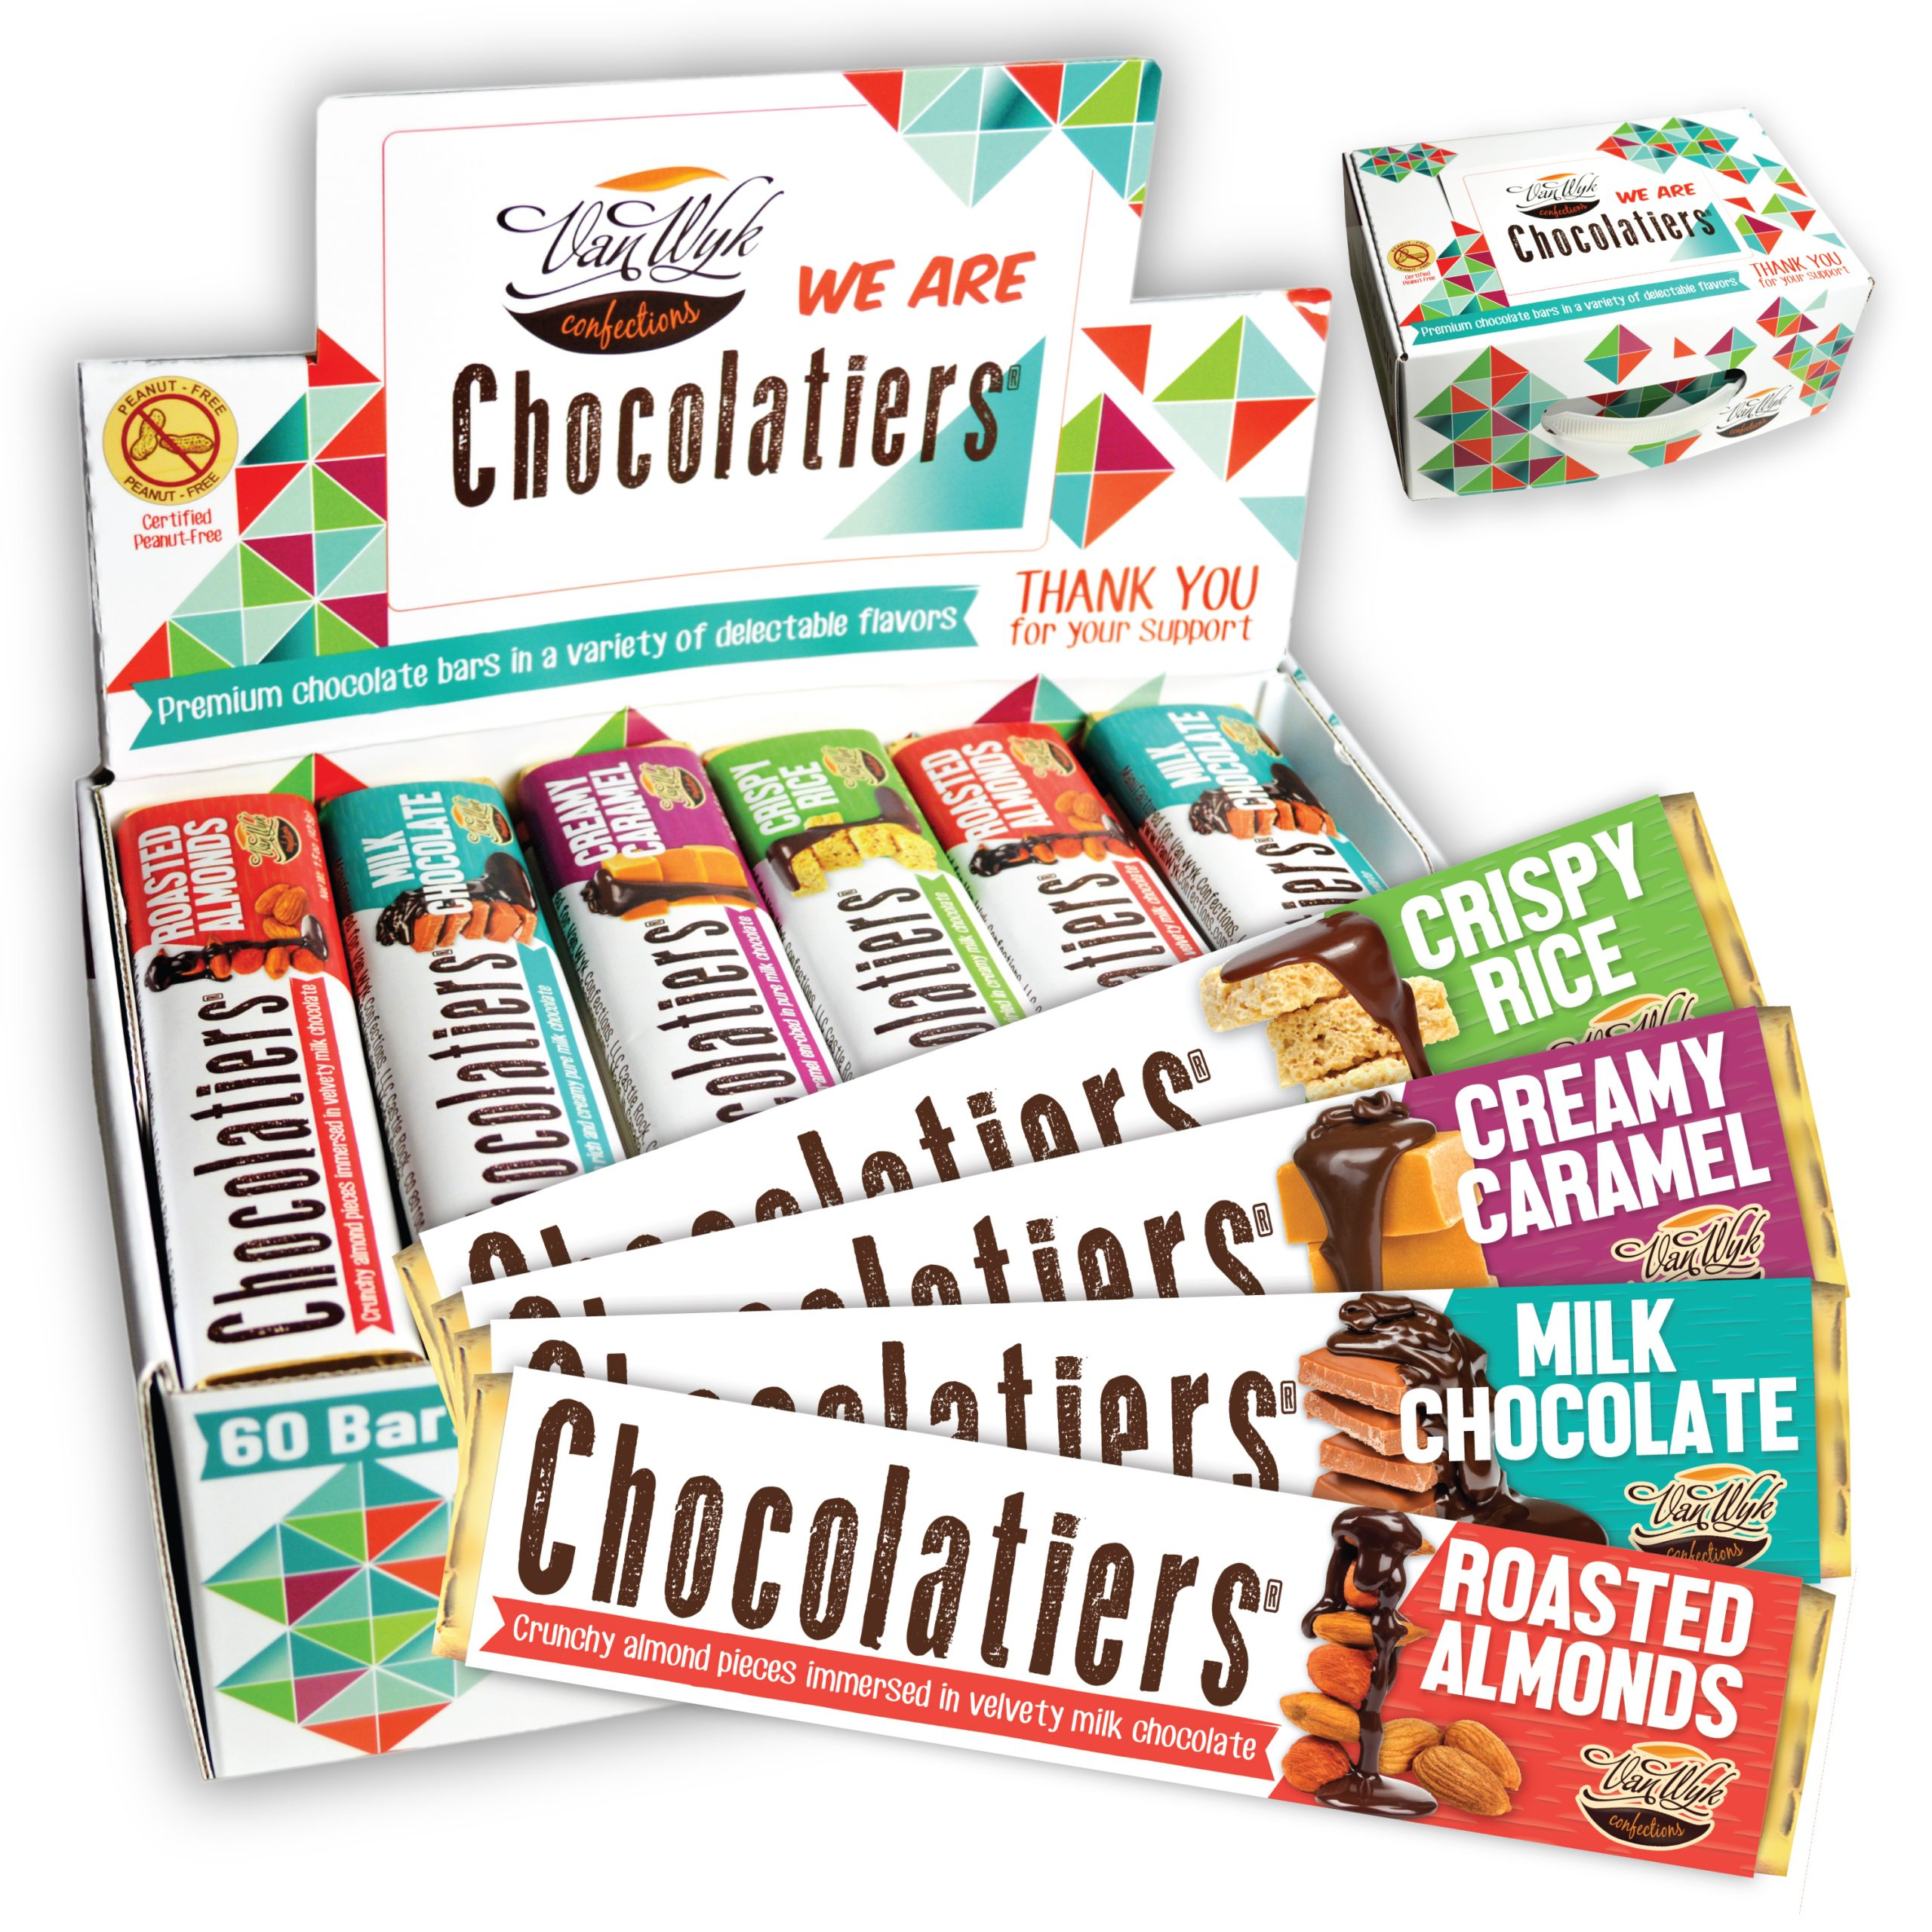 1-Chocolatiers-Carrier-and-Bars-Image